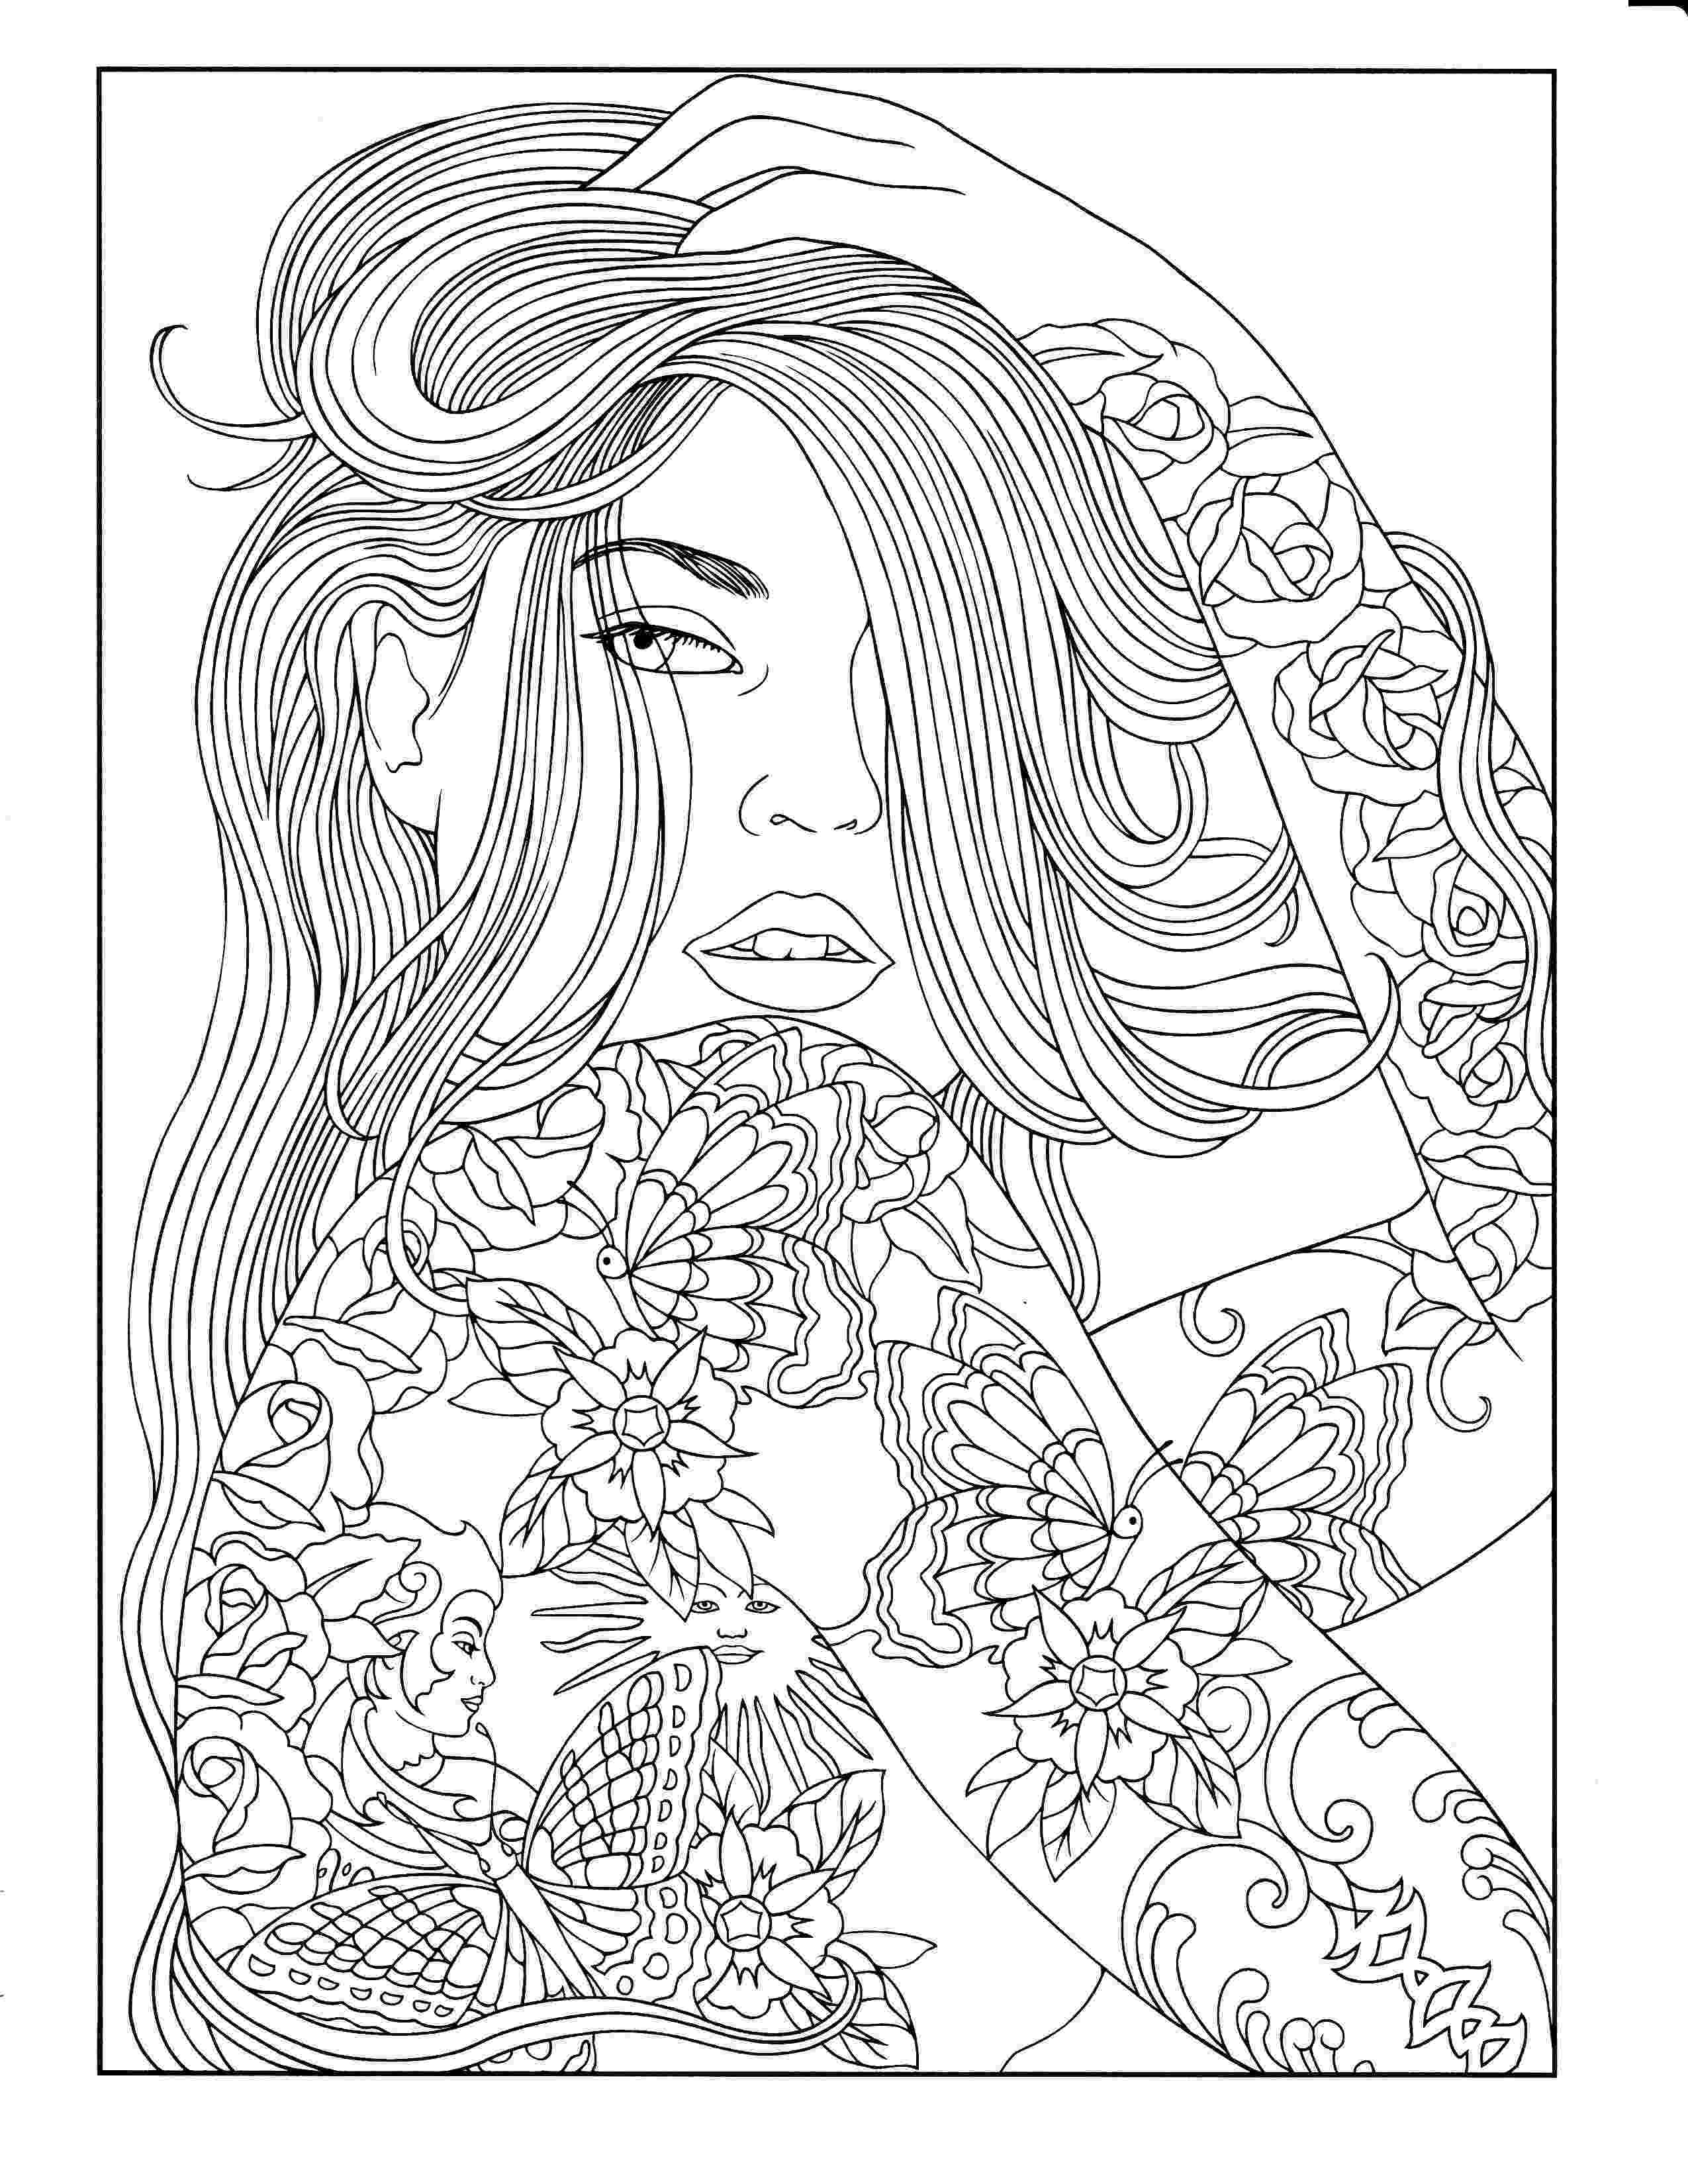 people coloring sheets people coloring pages coloring pages to download and print people sheets coloring